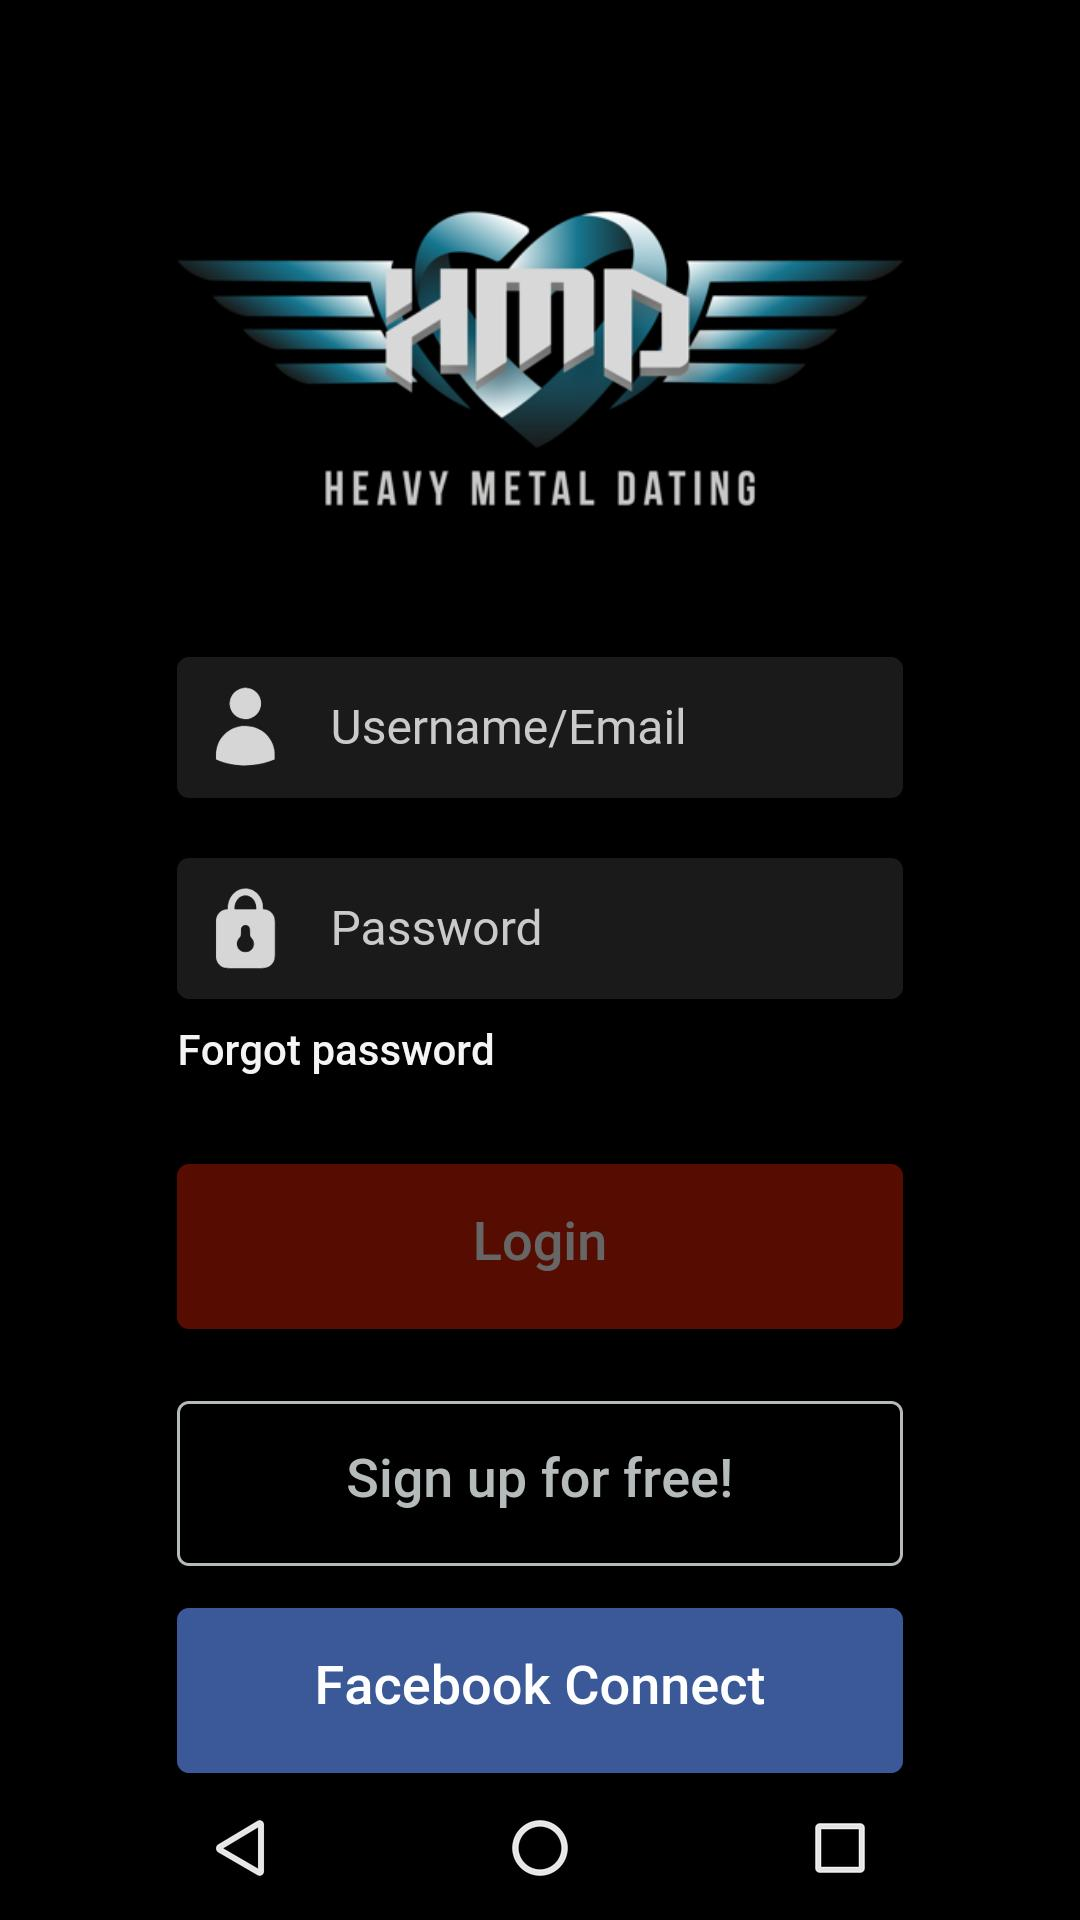 Heavy Metal dating